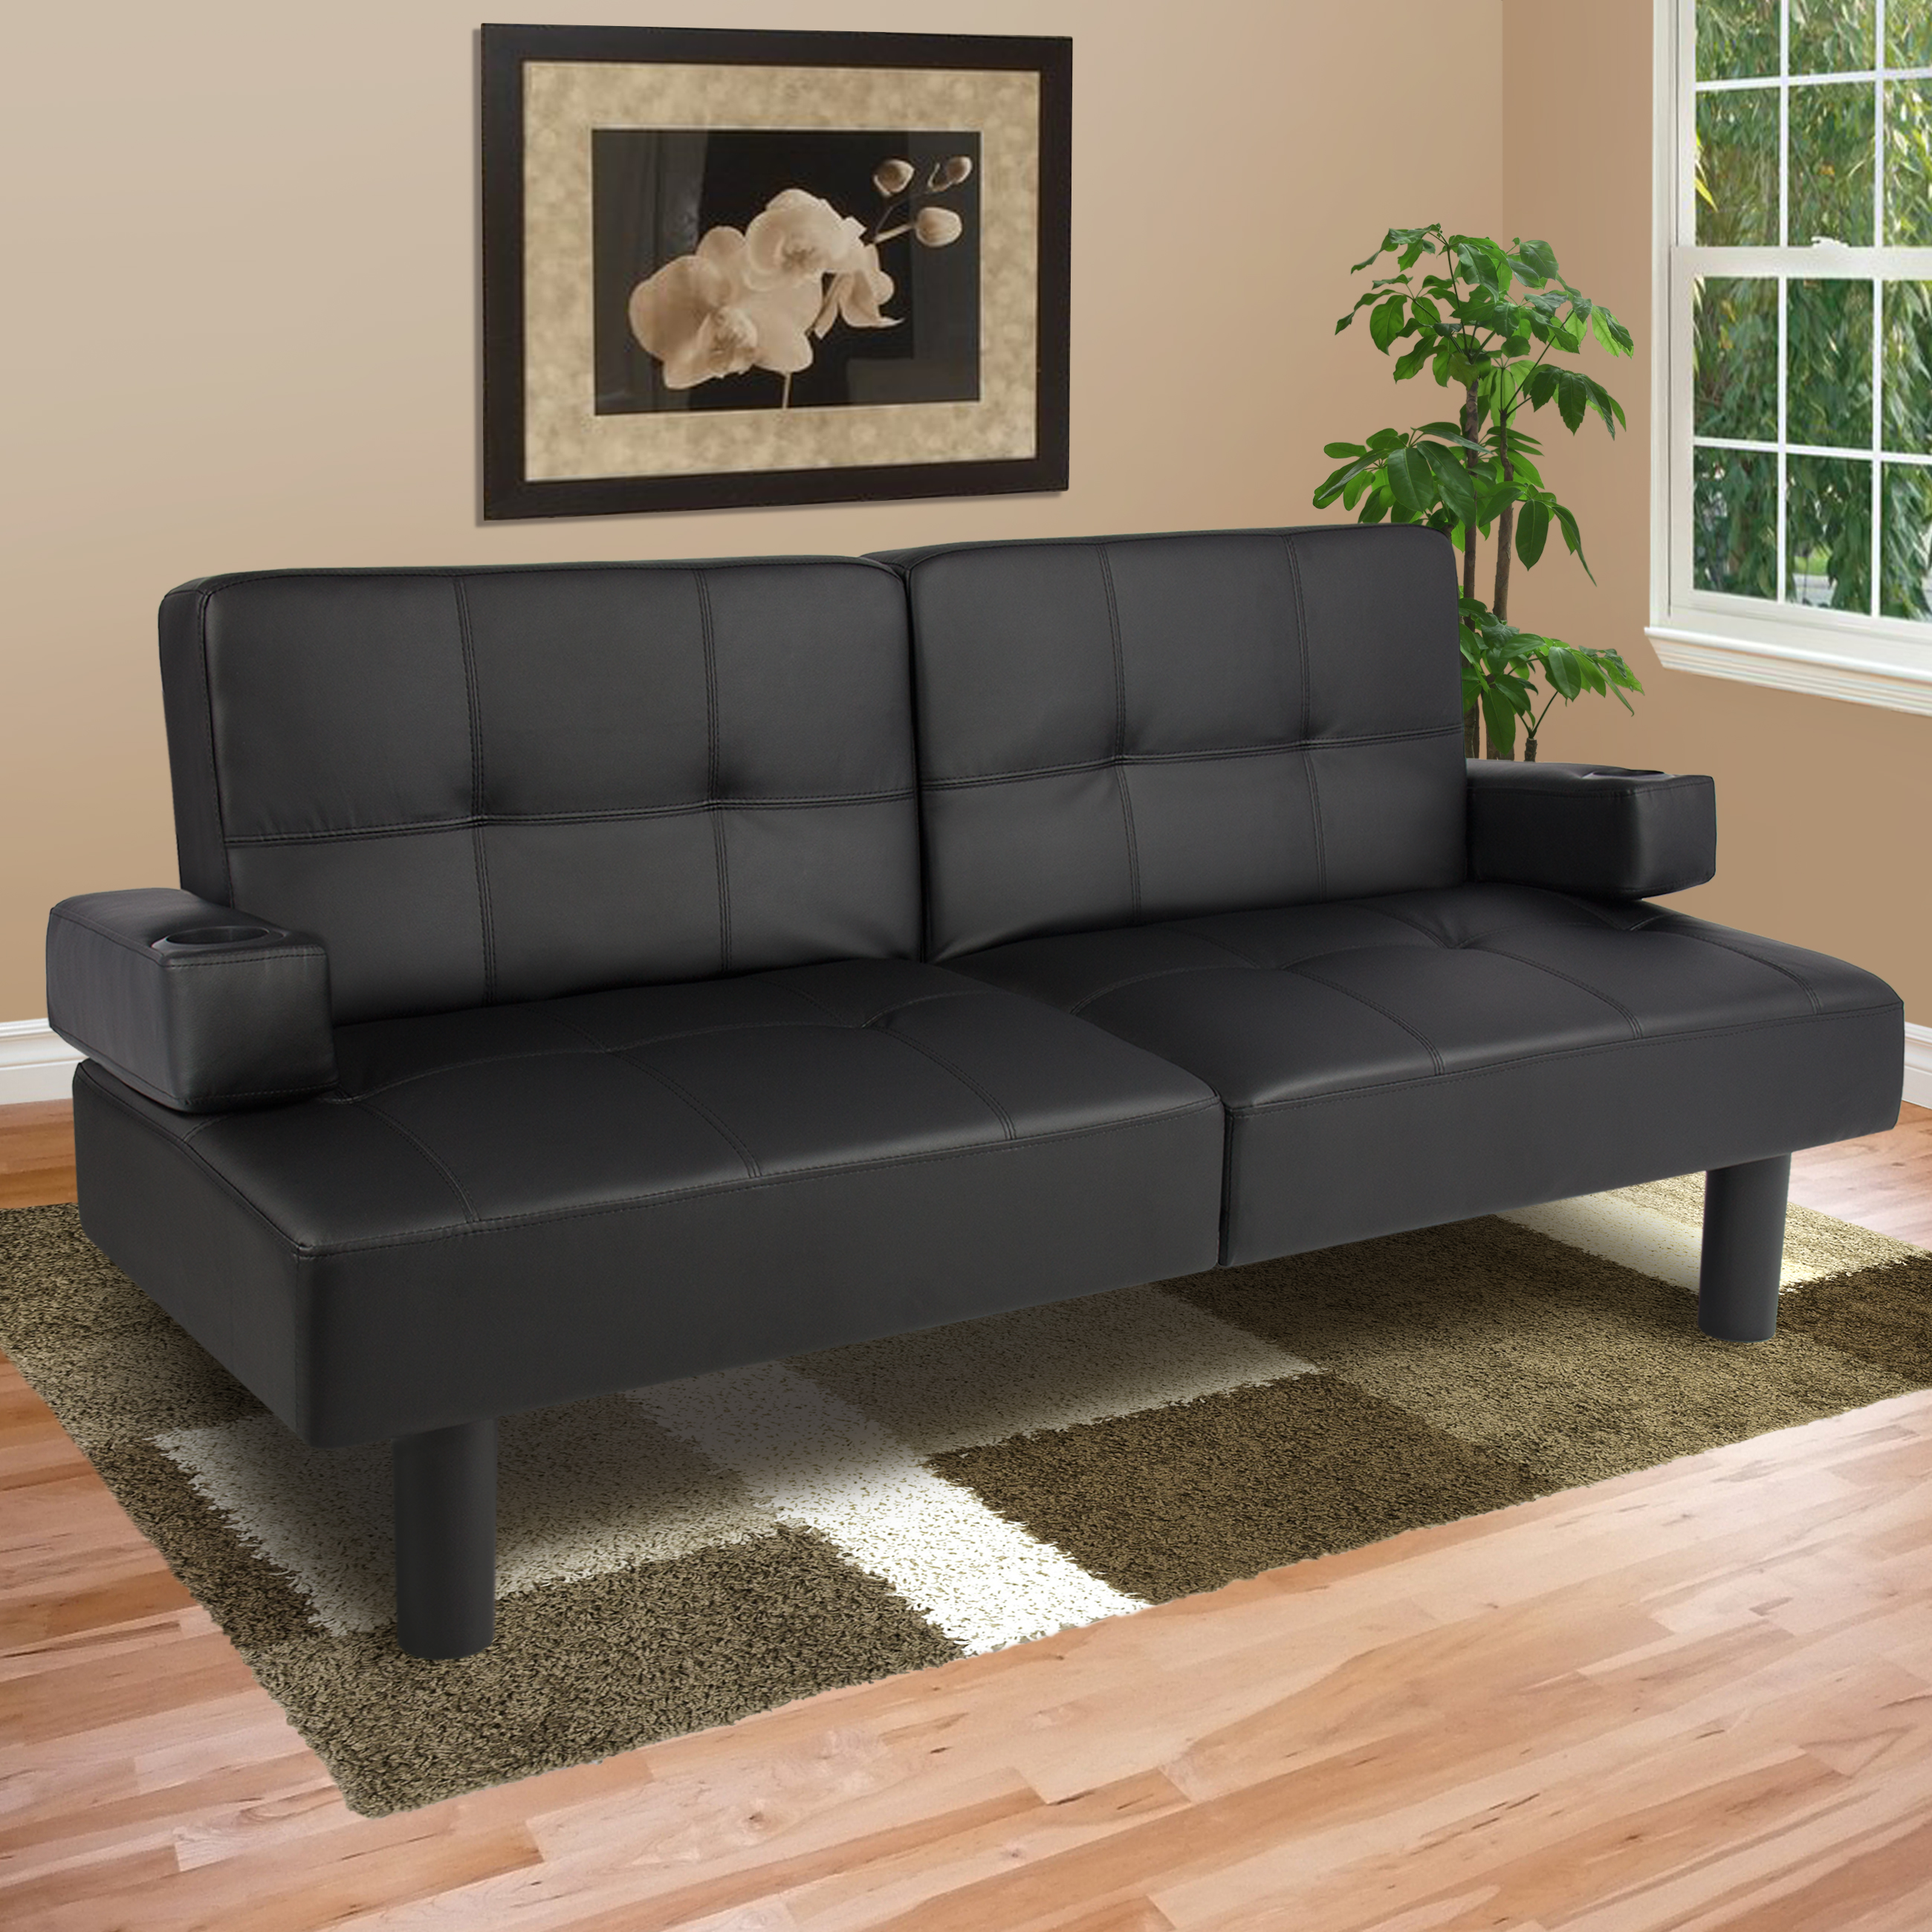 Leather Faux Fold Down Futon Sofa Bed Couch Sleeper Furniture Lounge Convertible : walmart sofas and sectionals - Sectionals, Sofas & Couches